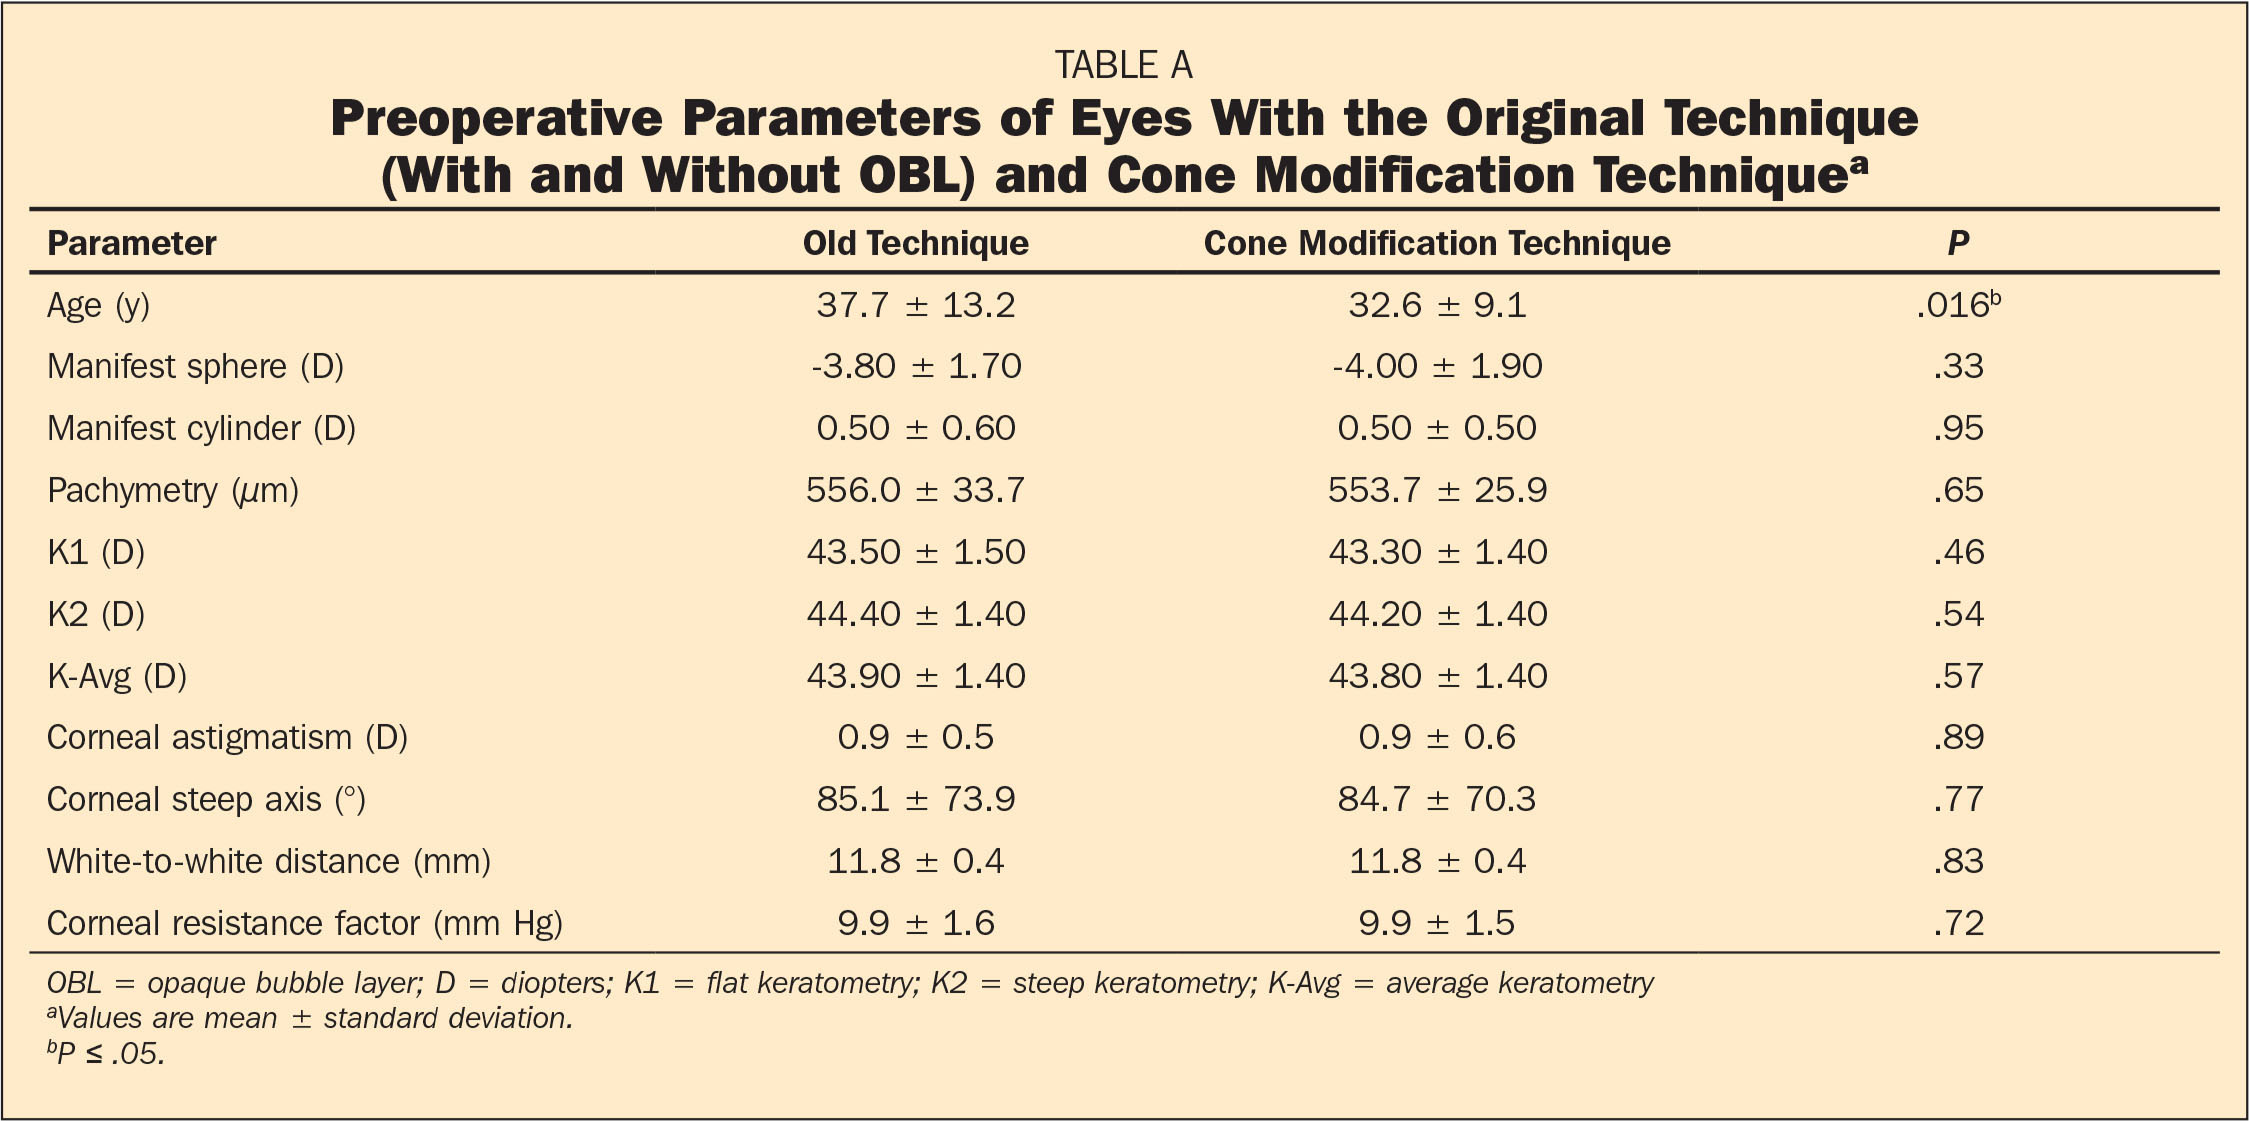 Preoperative Parameters of Eyes With the Original Technique (With and Without OBL) and Cone Modification Techniquea